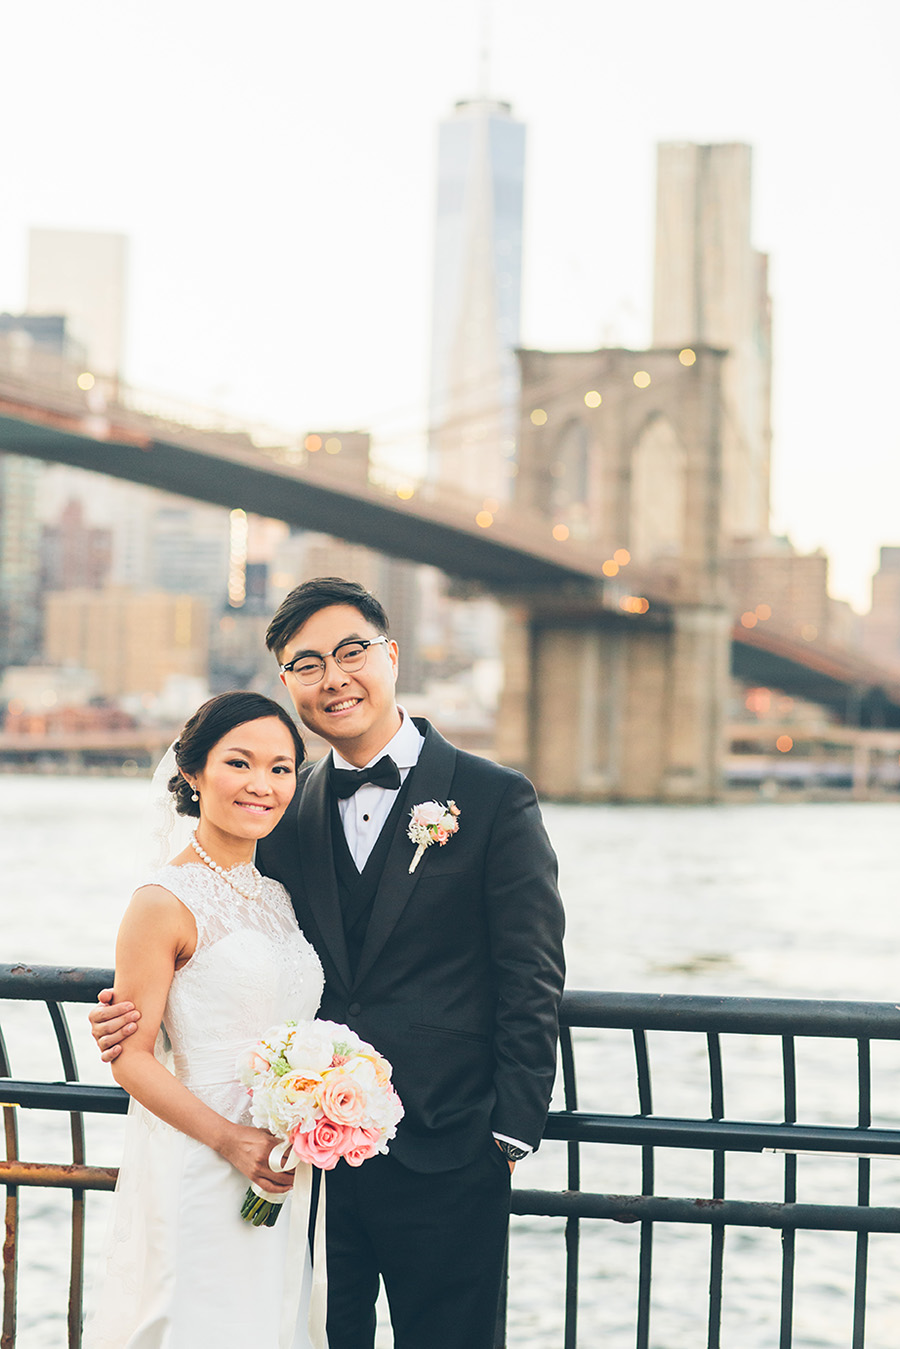 WING-KIT-BROOKLYN-DUMBO-NYC-WEDDING-CYNTHIACHUNG-0015.jpg